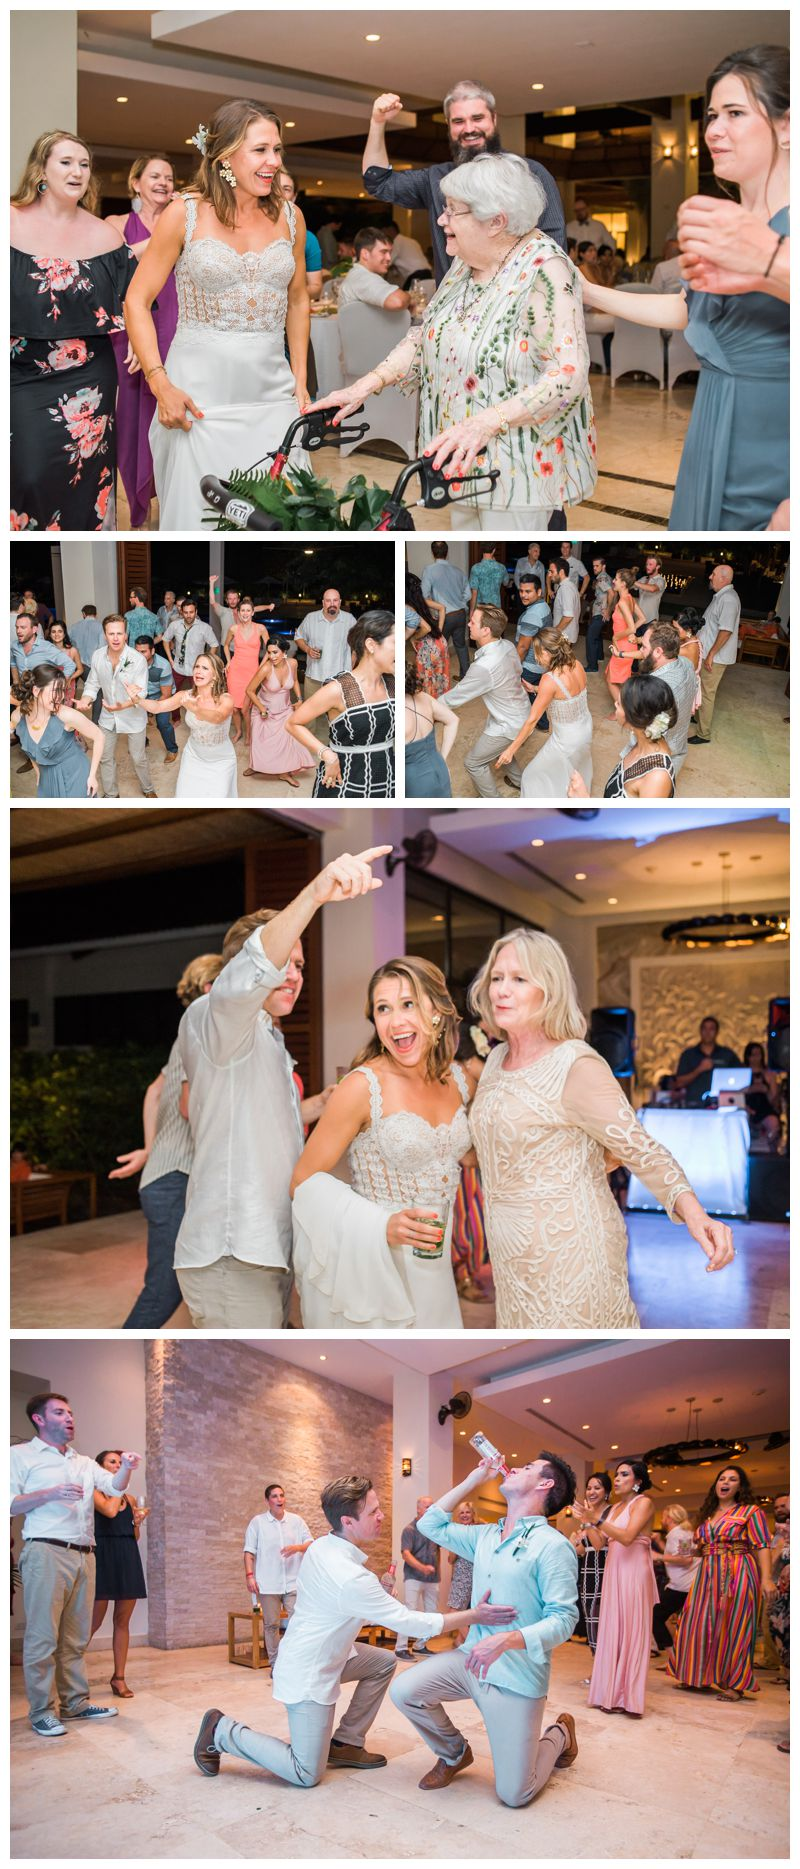 Wedding dancing photos at Reserva Conchal. Beach wedding in Playa Conchal Costa Rica photographed by Kristen M. Brown, Samba to the Sea Photography.